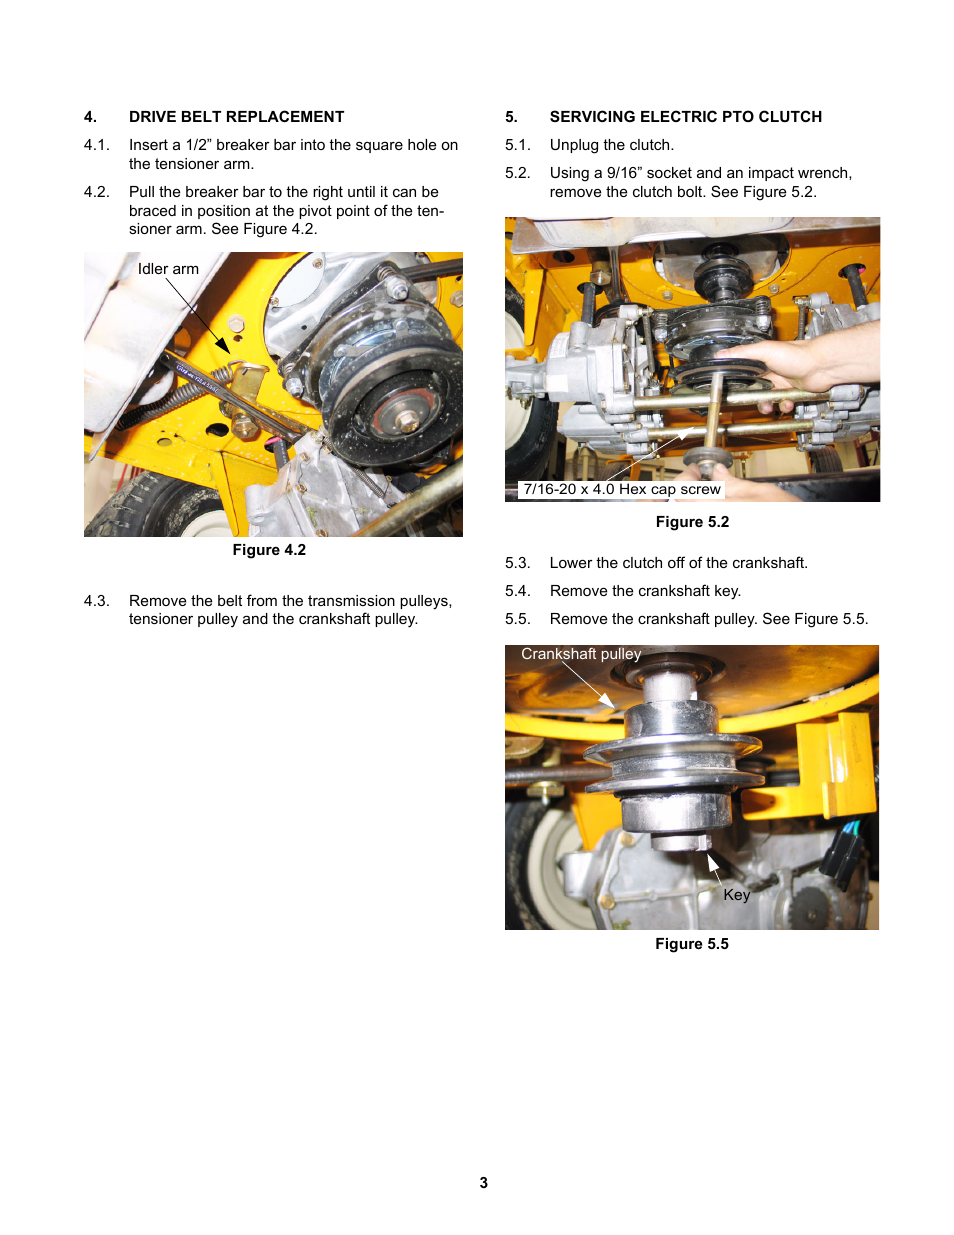 Drive Belt Replacement Servicing Electric Pto Clutch Cub Cadet Rzt 22 User Manual Page 7 30